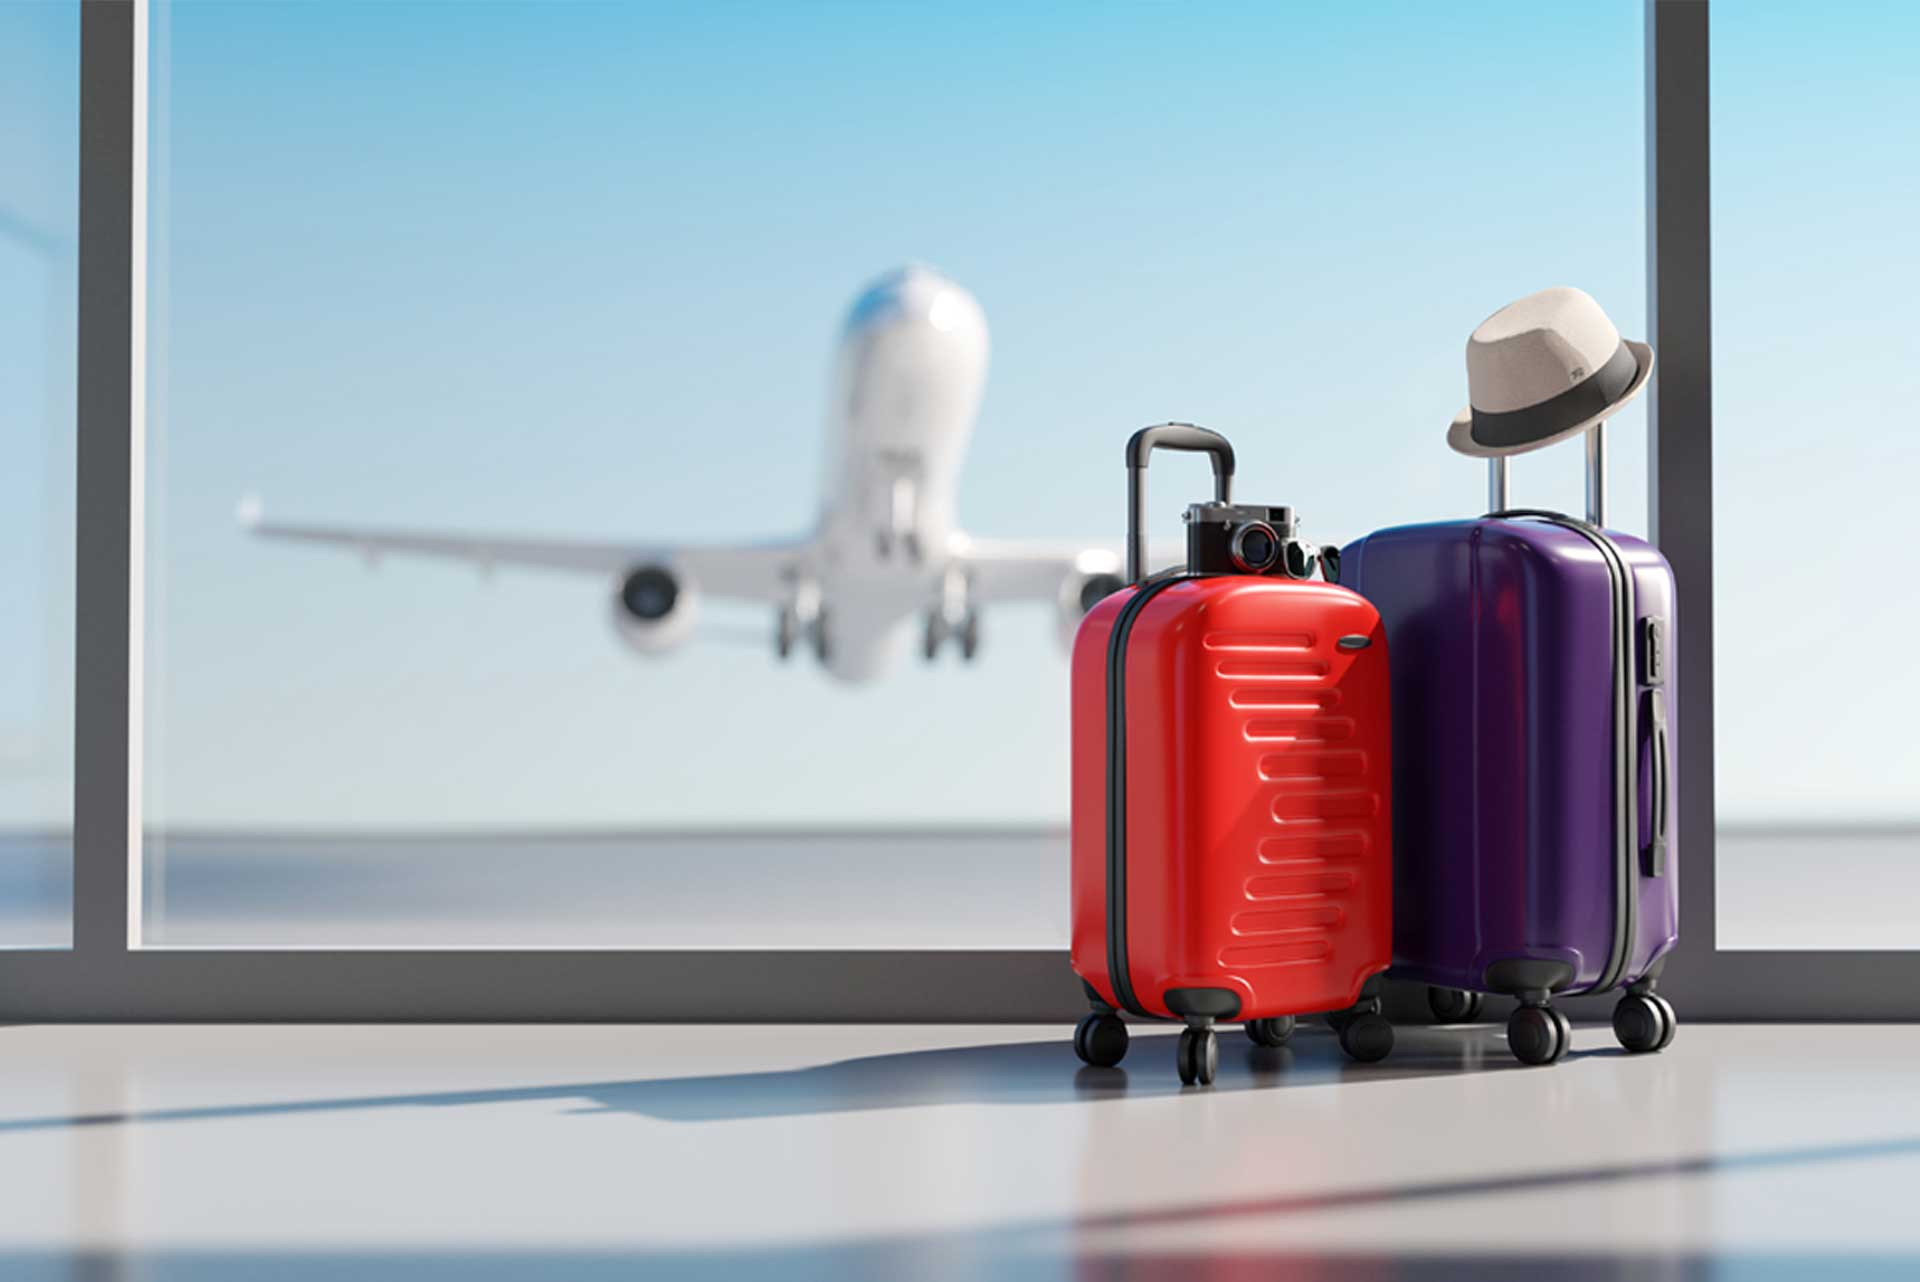 Suitcases at airports